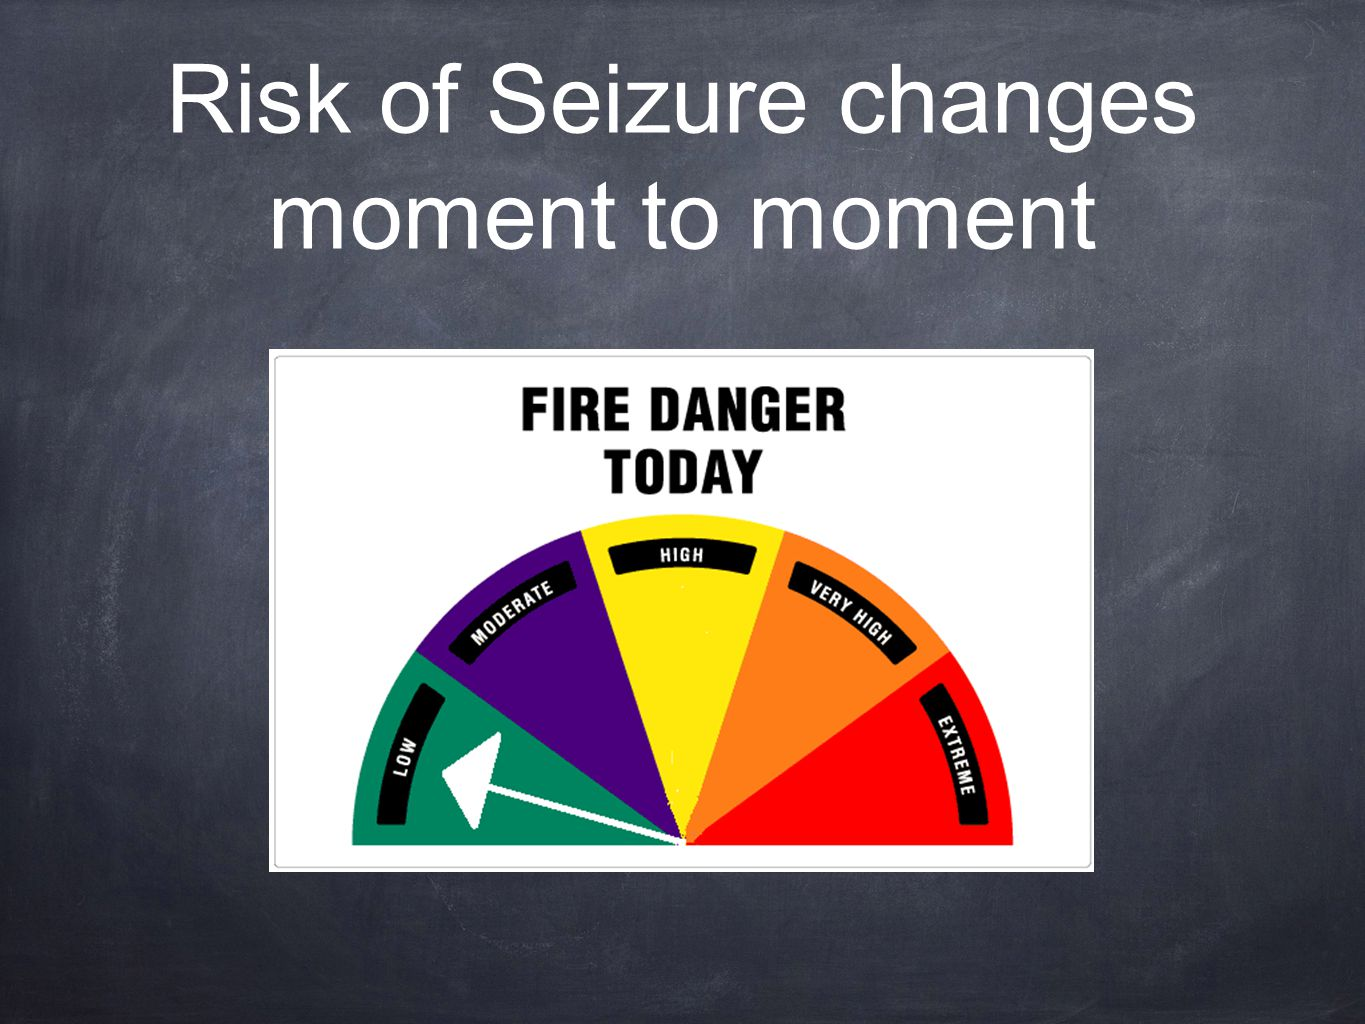 Risk of Seizure changes moment to moment